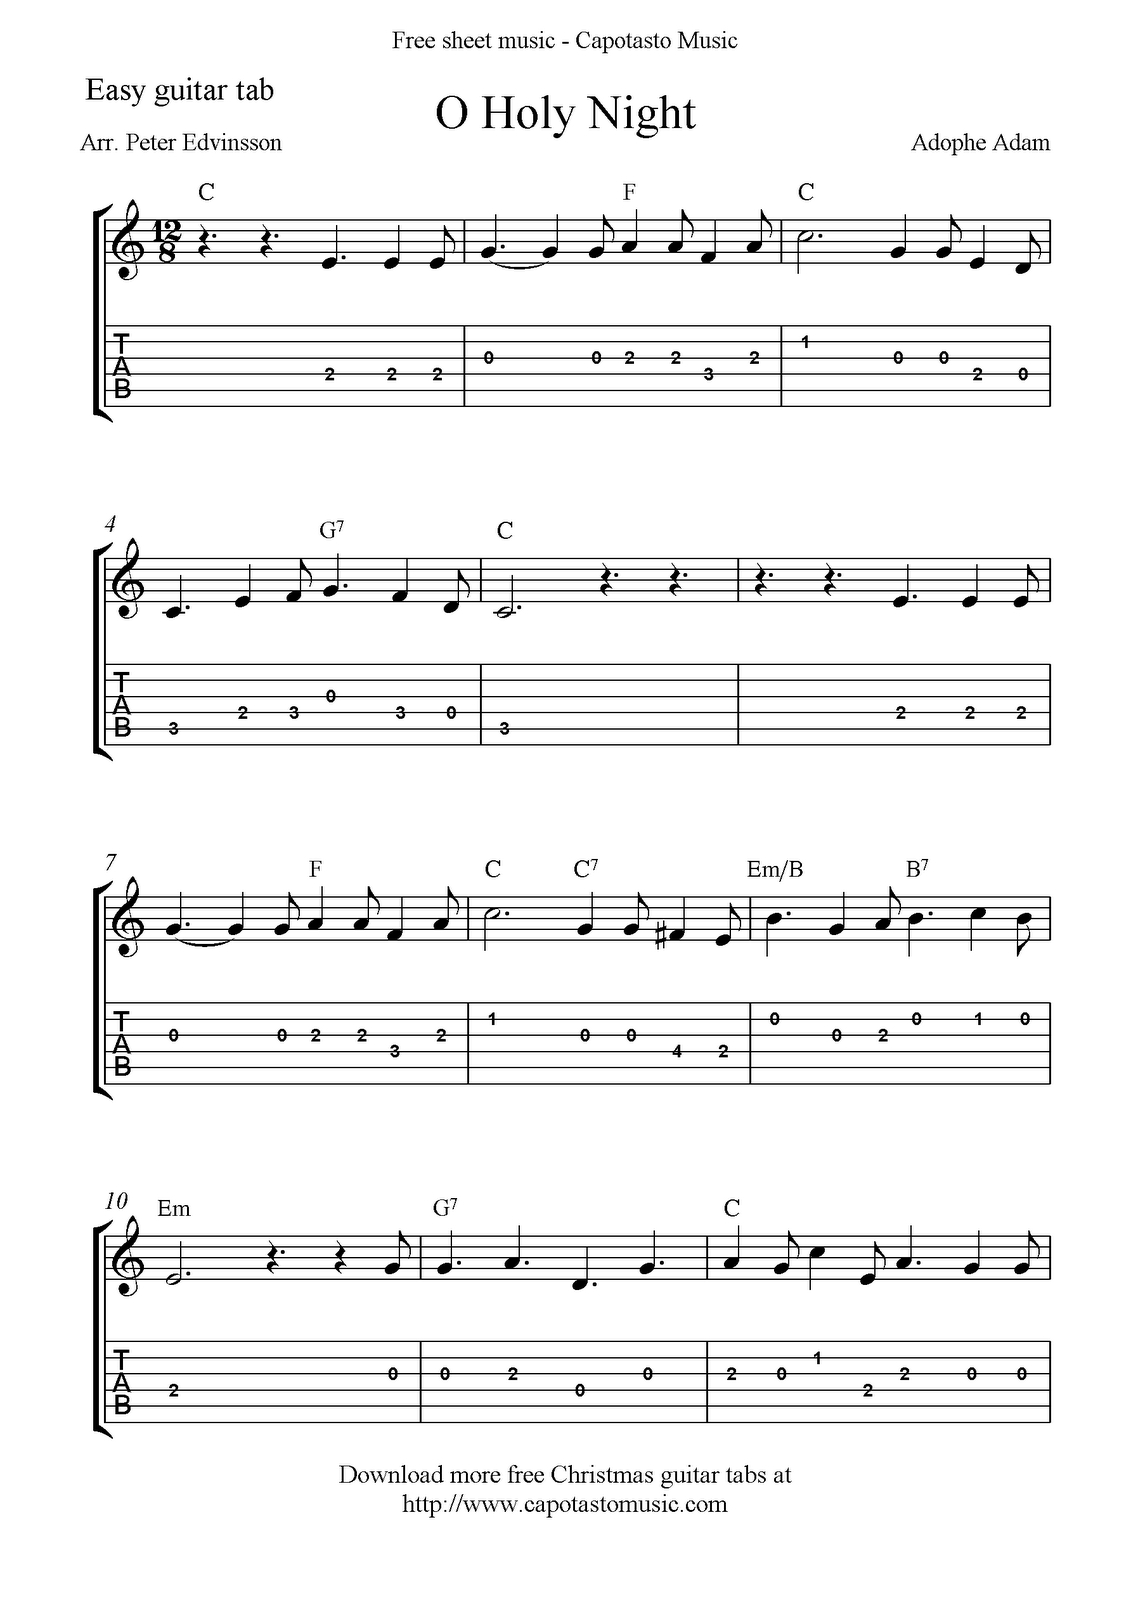 Free Printable Sheet Music: O Holy Night, Free Easy Christmas Guitar - Free Printable Guitar Tabs For Beginners